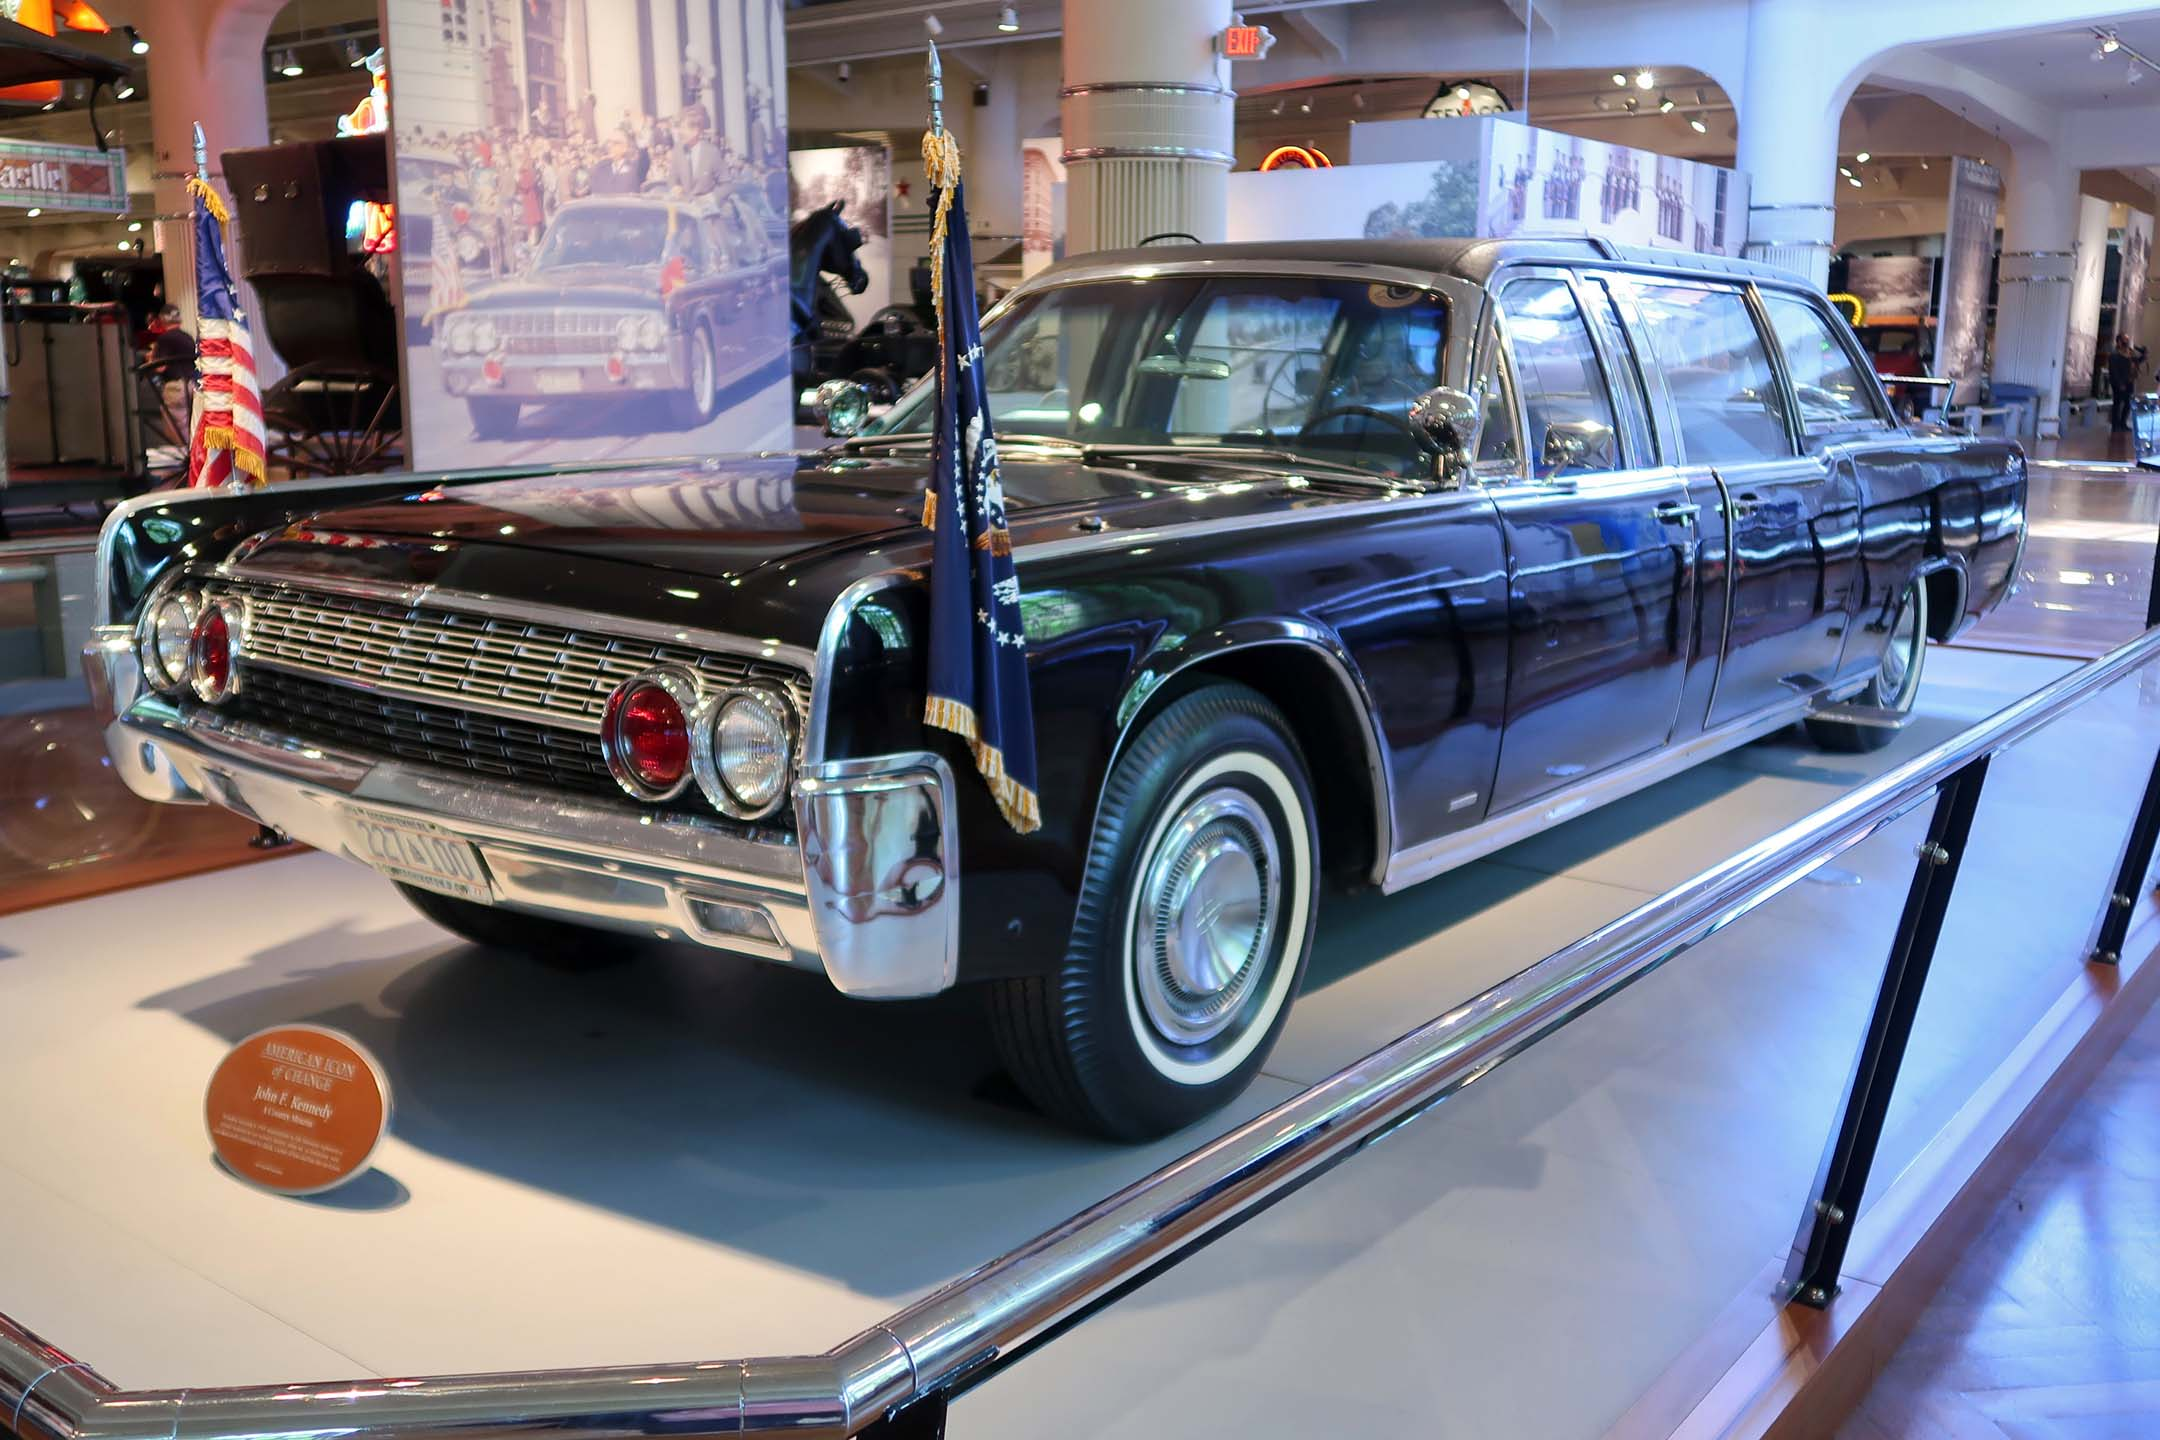 The 1961 Lincoln in which John F. Kennedy was killed was later rebuilt with a roof and put back into presidential service